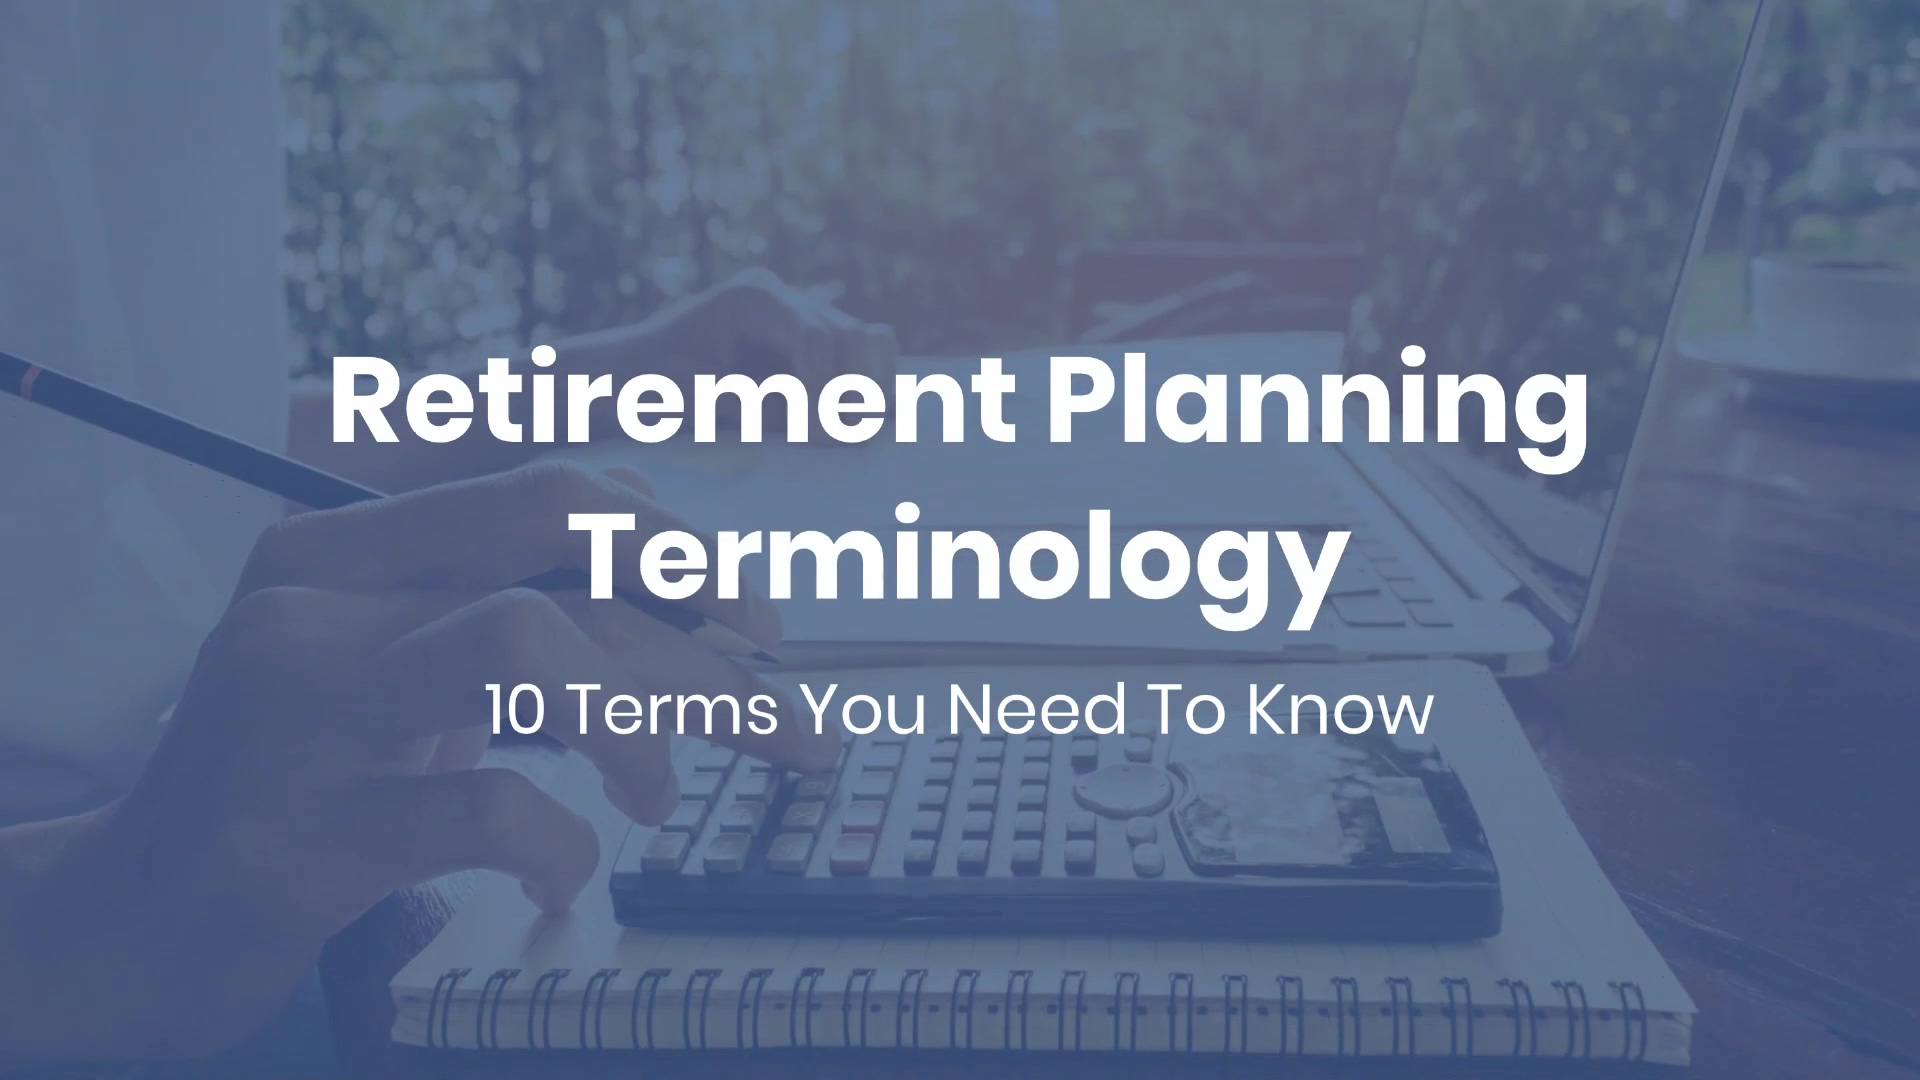 Retirement_Planning_Terminology_10_Terms (4)